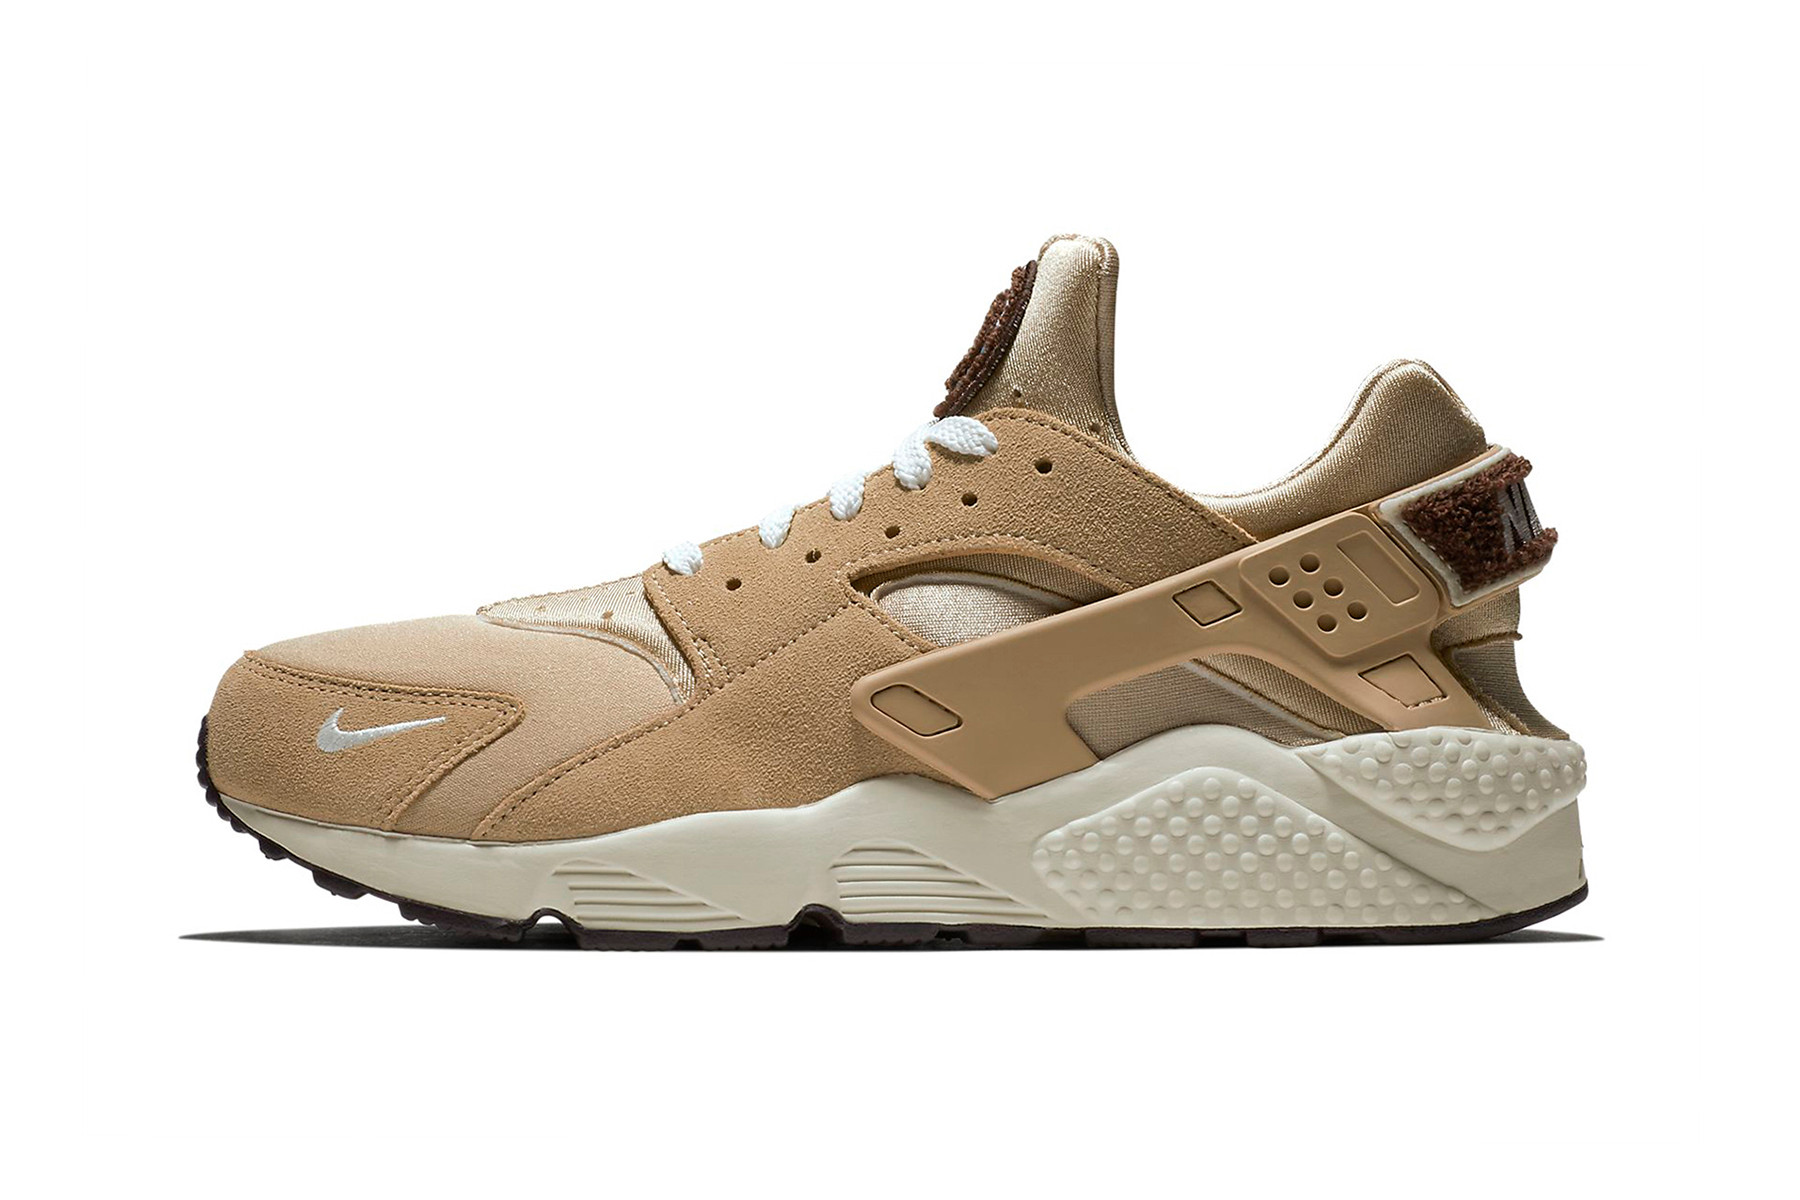 Nike Air Huarache Premium Release Date sneaker price info purchase chenille  logo branding mini swoosh colorway